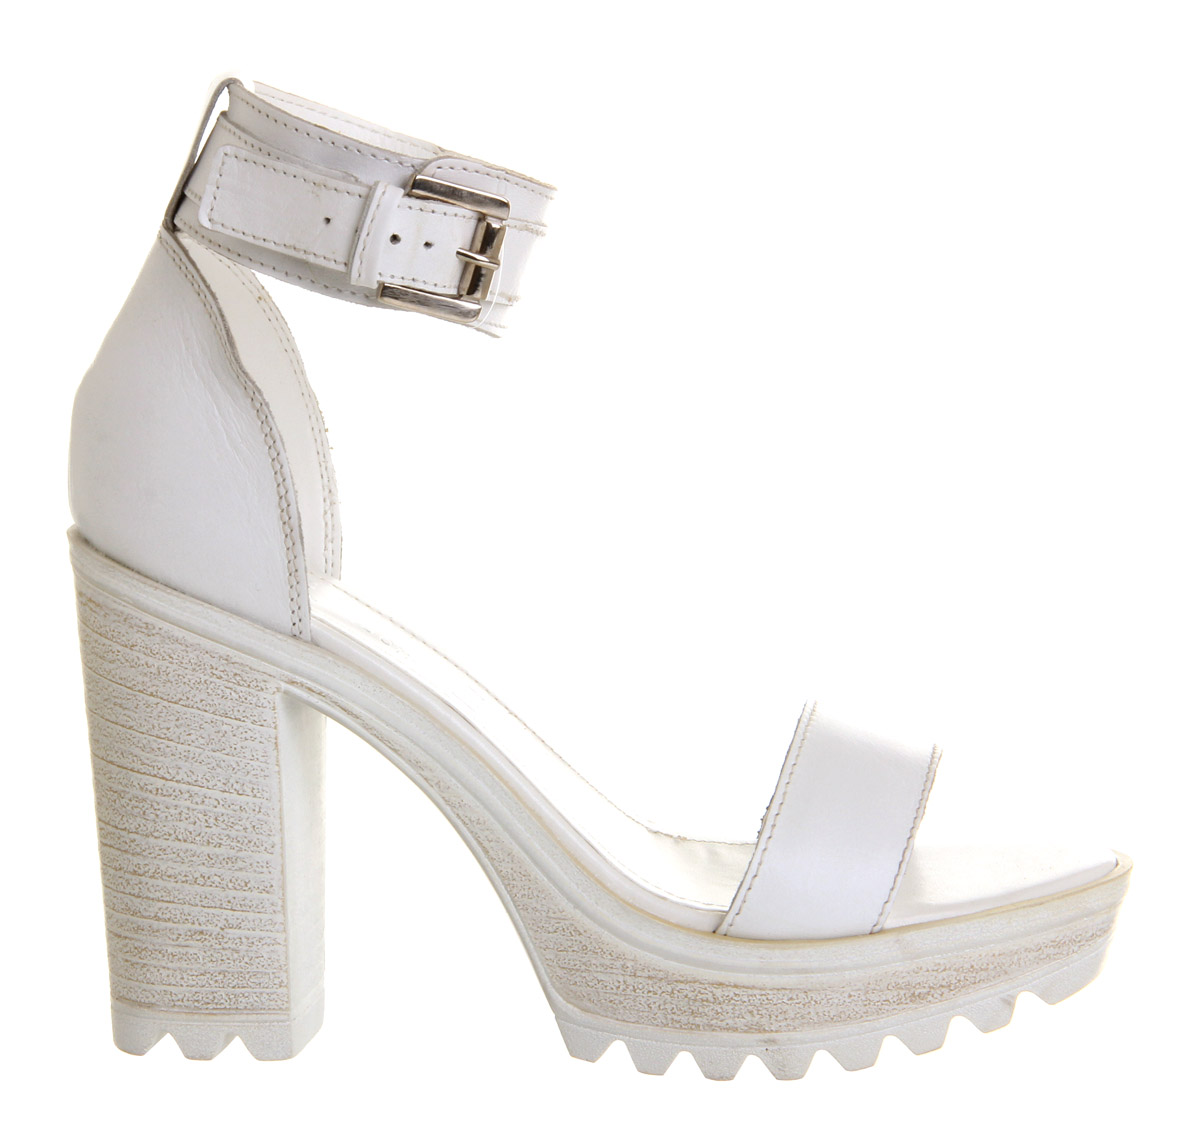 Office Jagged Cleated Sandal White Leather - High Heels